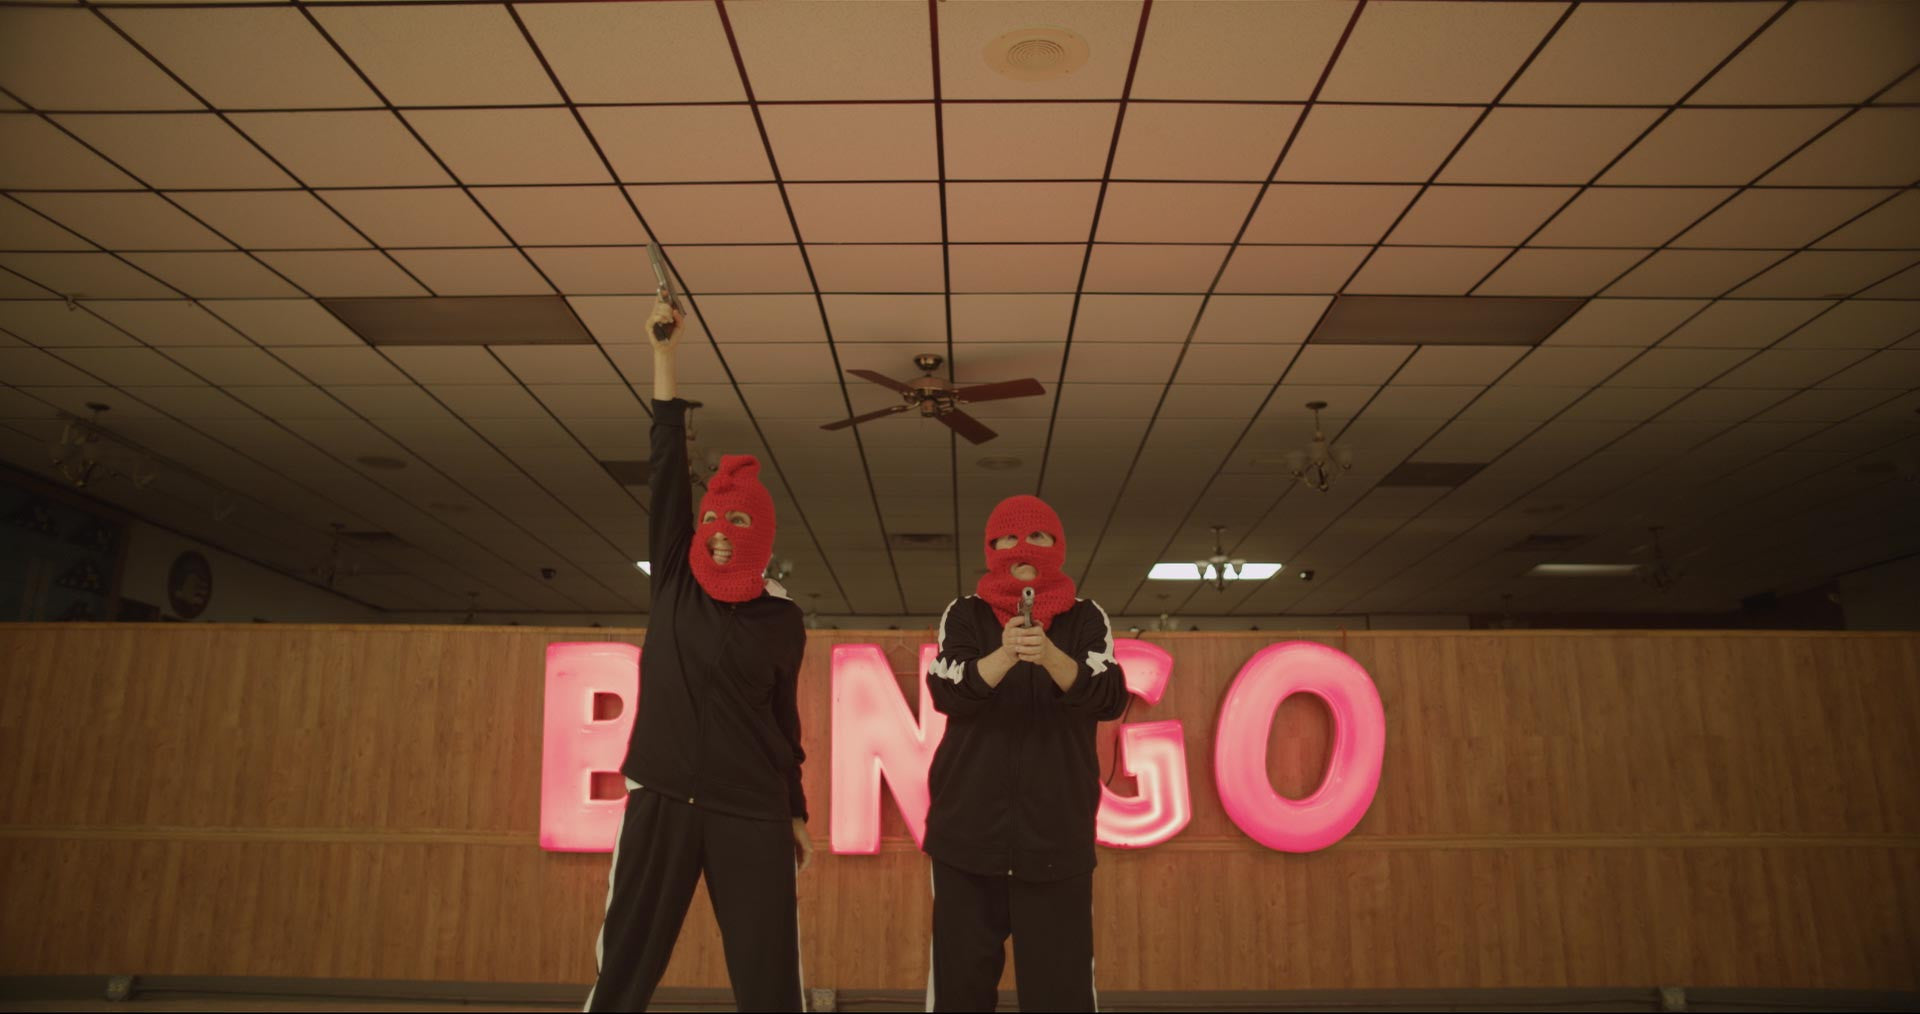 Bingo Night Heist - Cuts Worth Watching